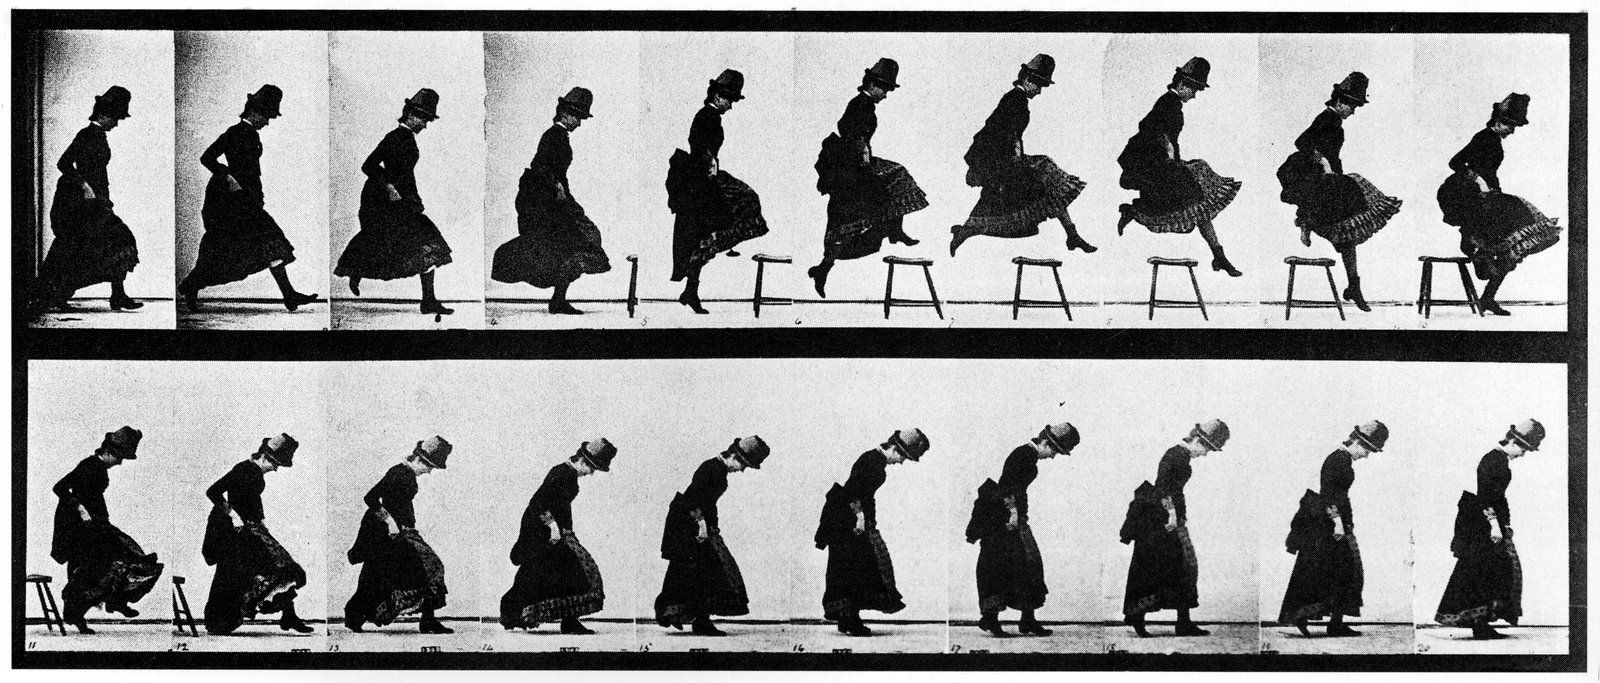 17 Best images about Eadweard Muybridge Photography on Pinterest ...